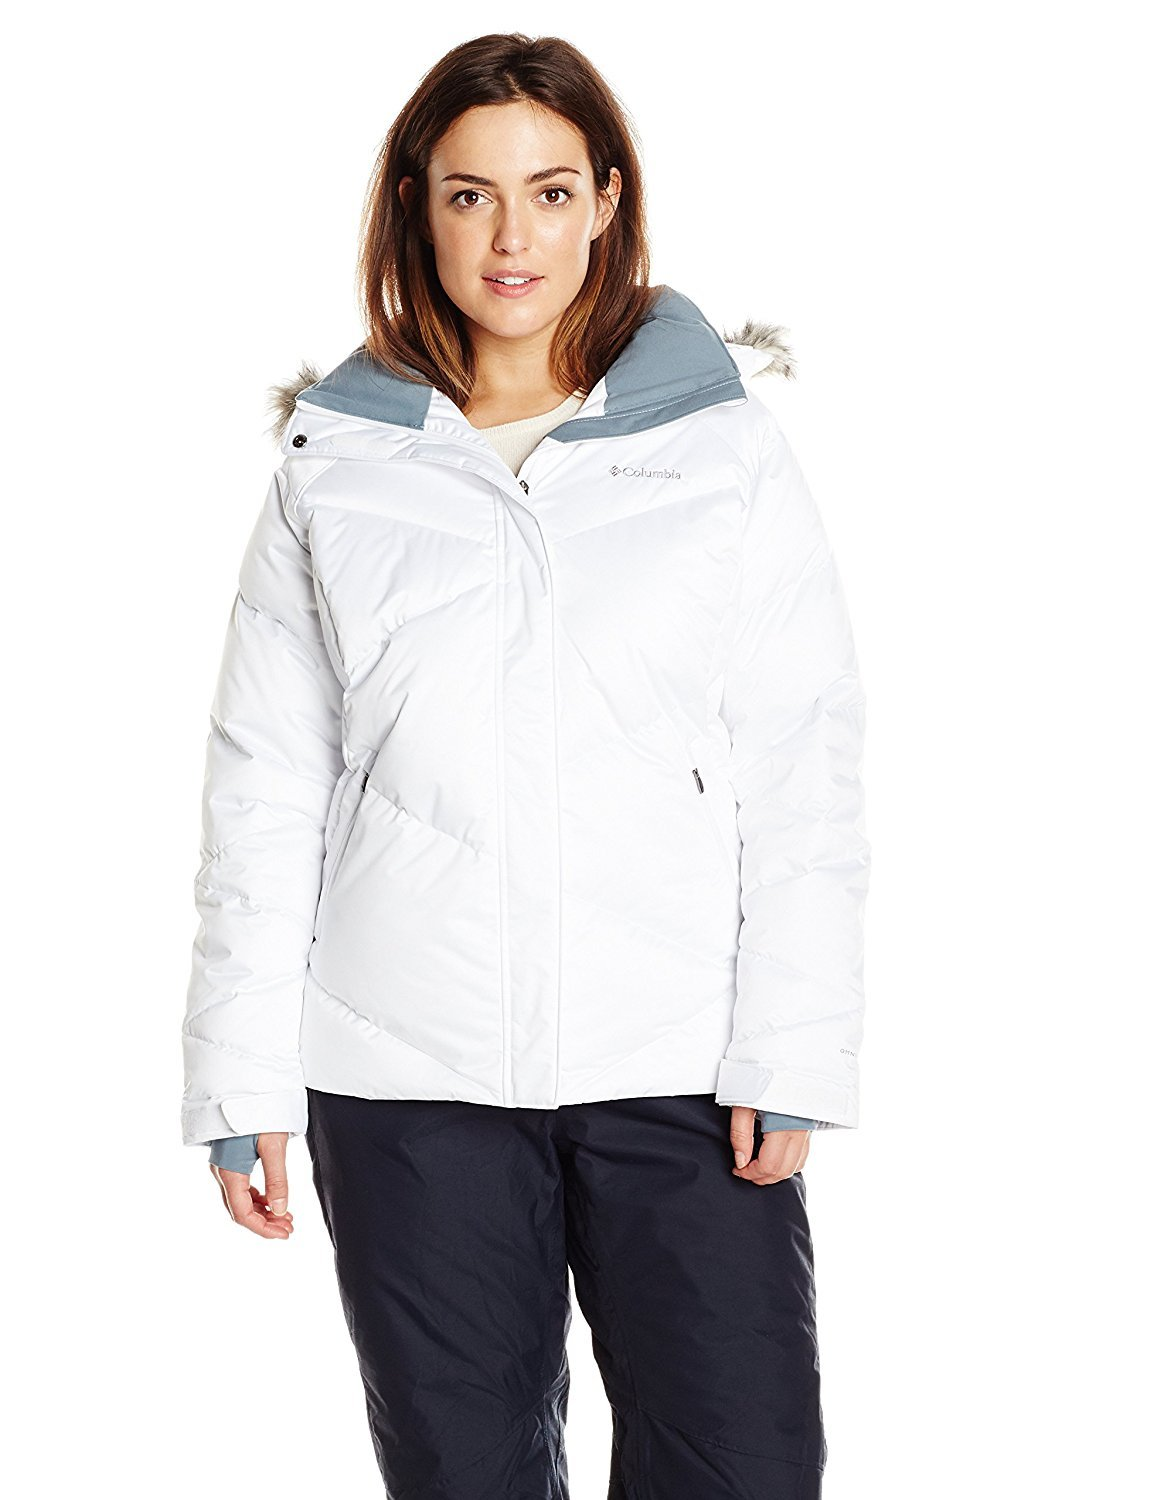 Columbia Women's Plus Lay D Down Jacket White 2X [並行輸入品] B075CJPKPZ